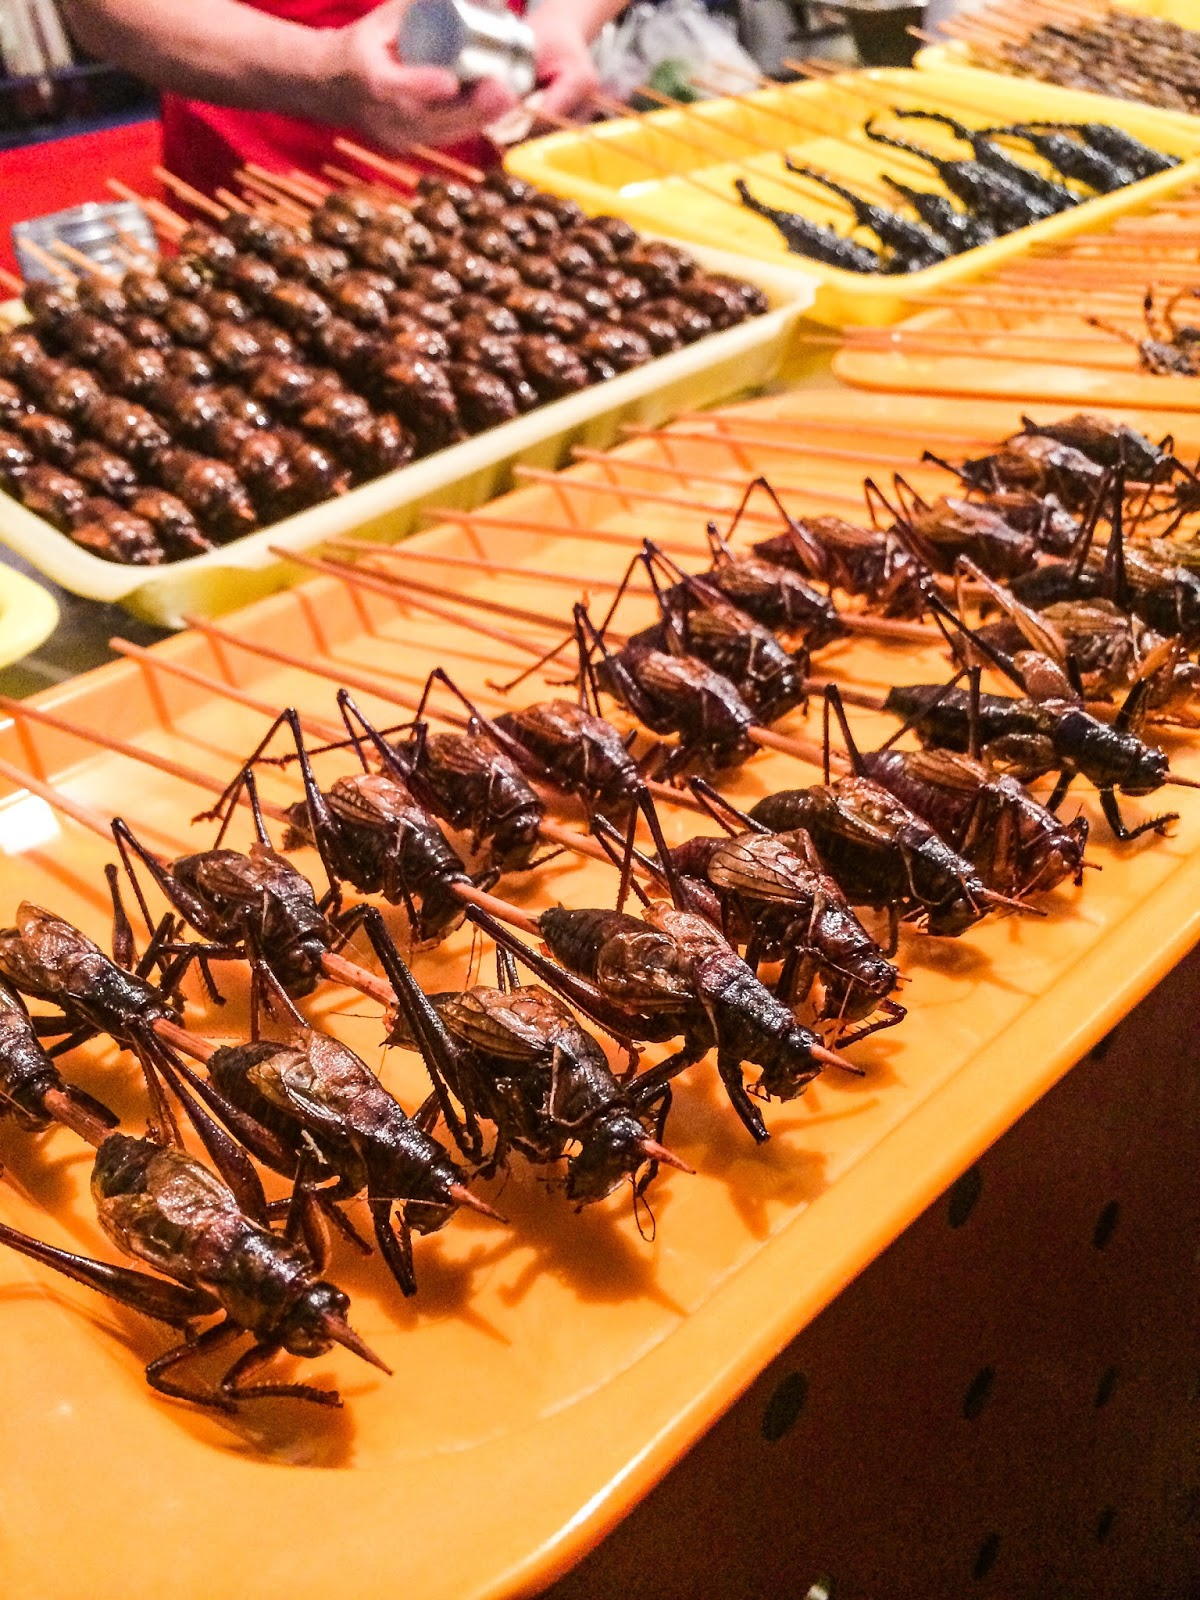 Fried grasshoppers at Donghuamen Food Market, Beijing